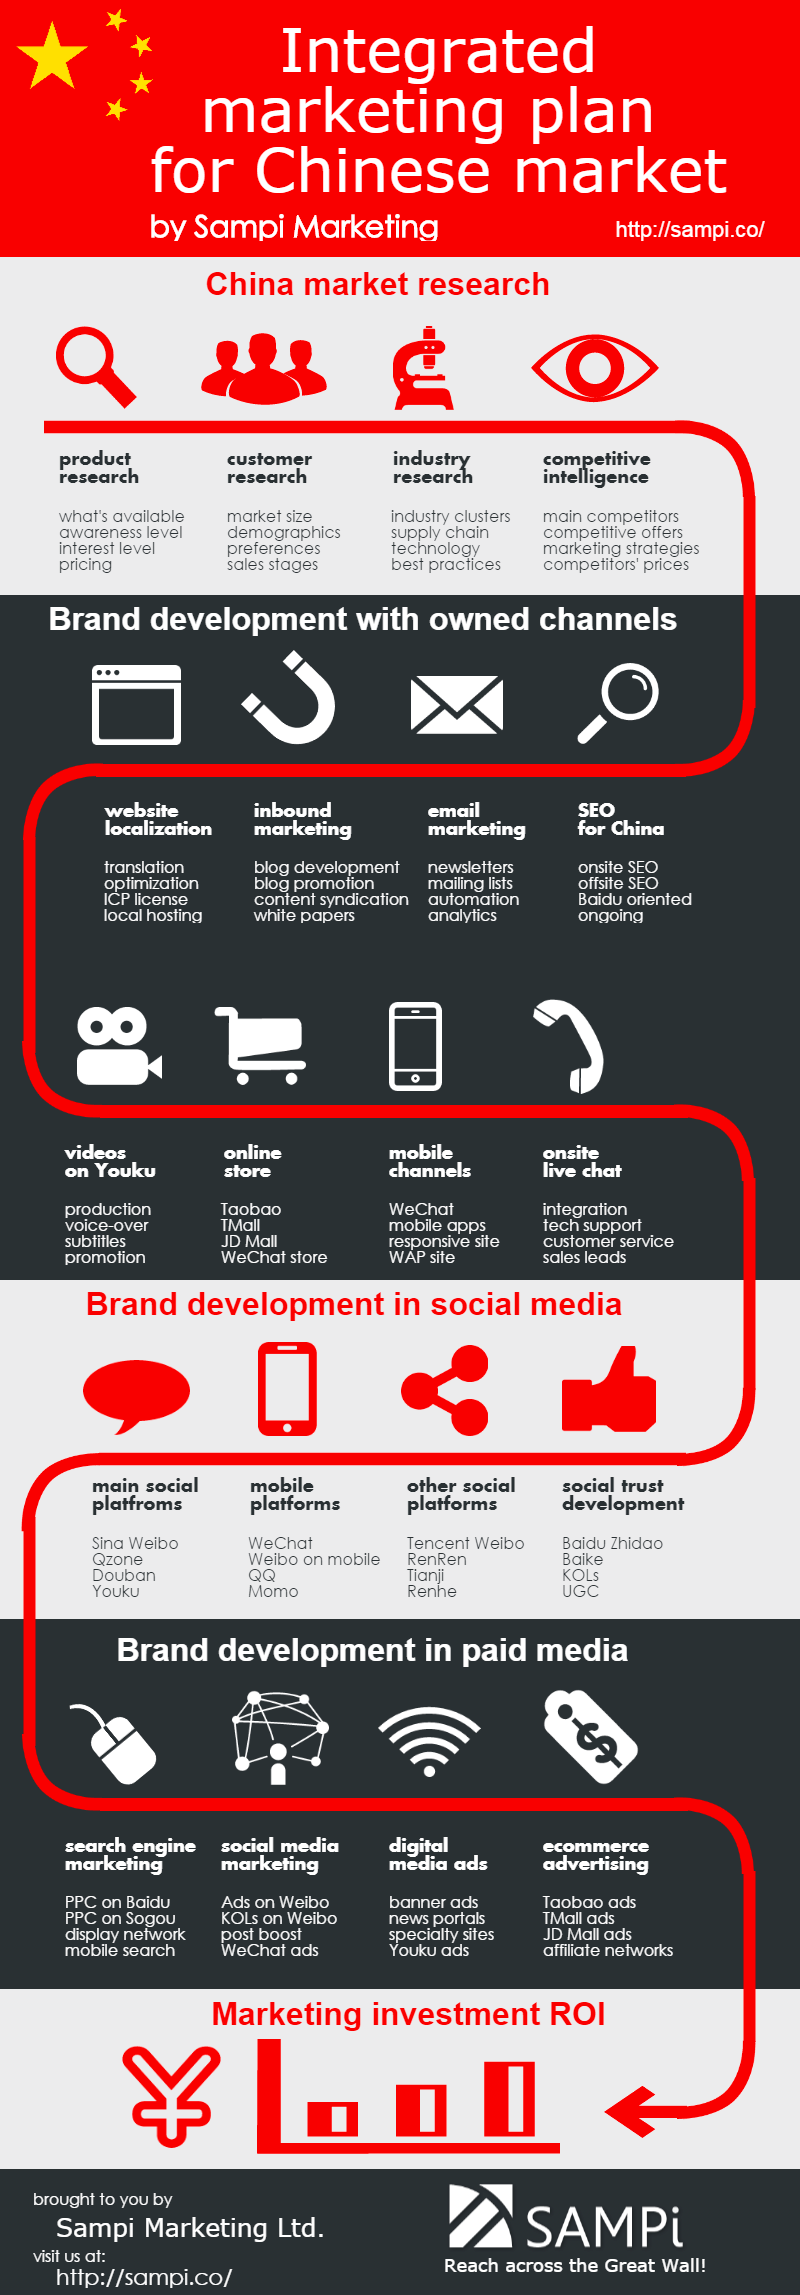 China integrated marketing plan infographic